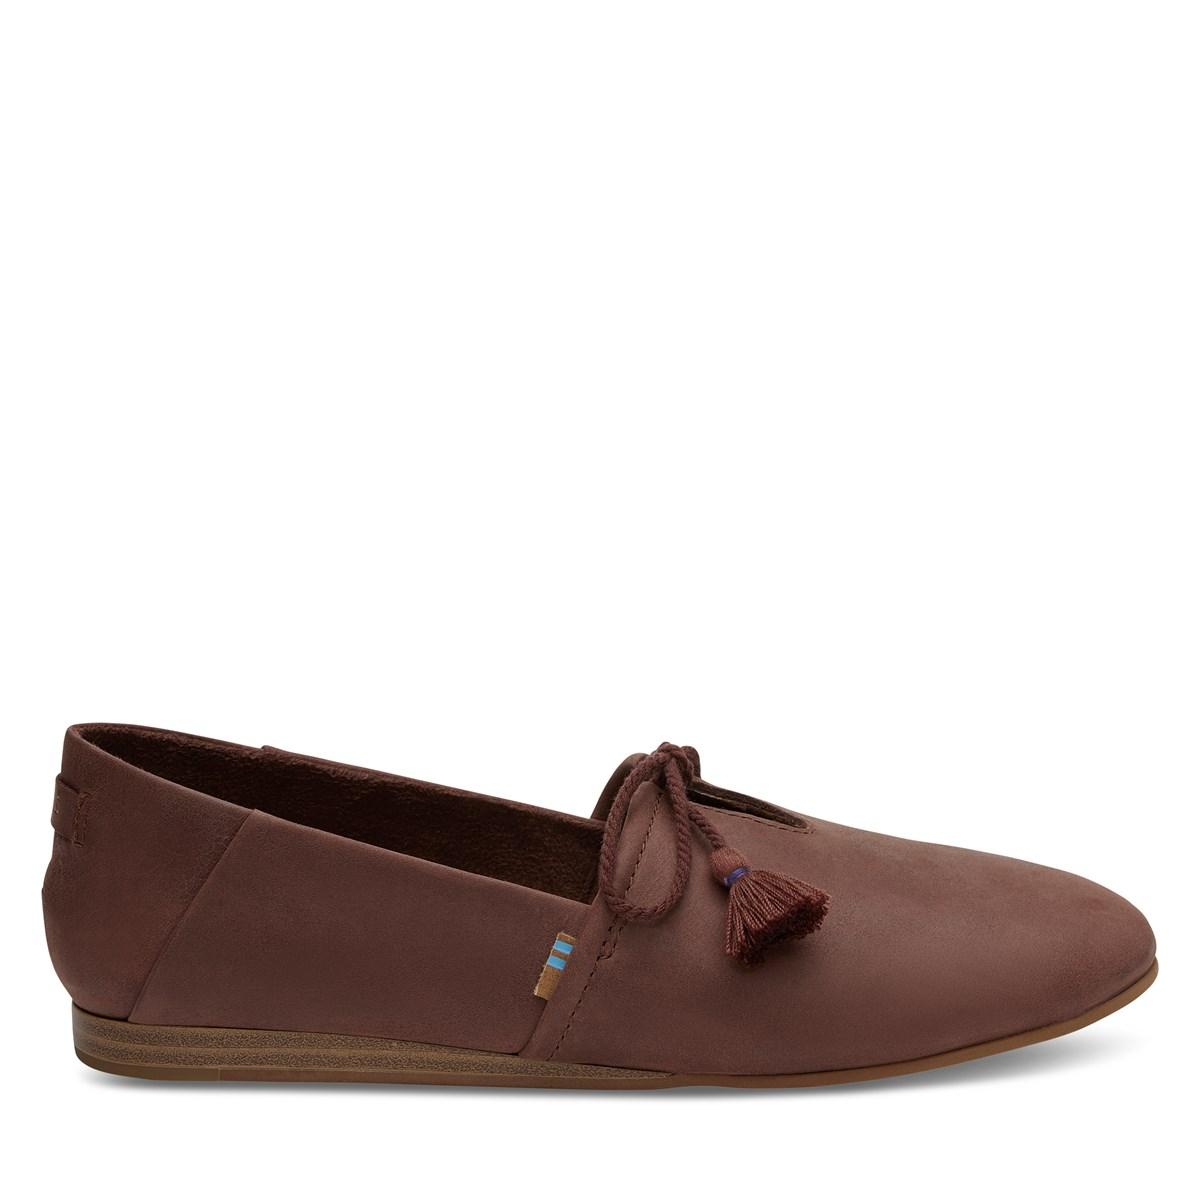 Women's Kelli Slip-On in Brown